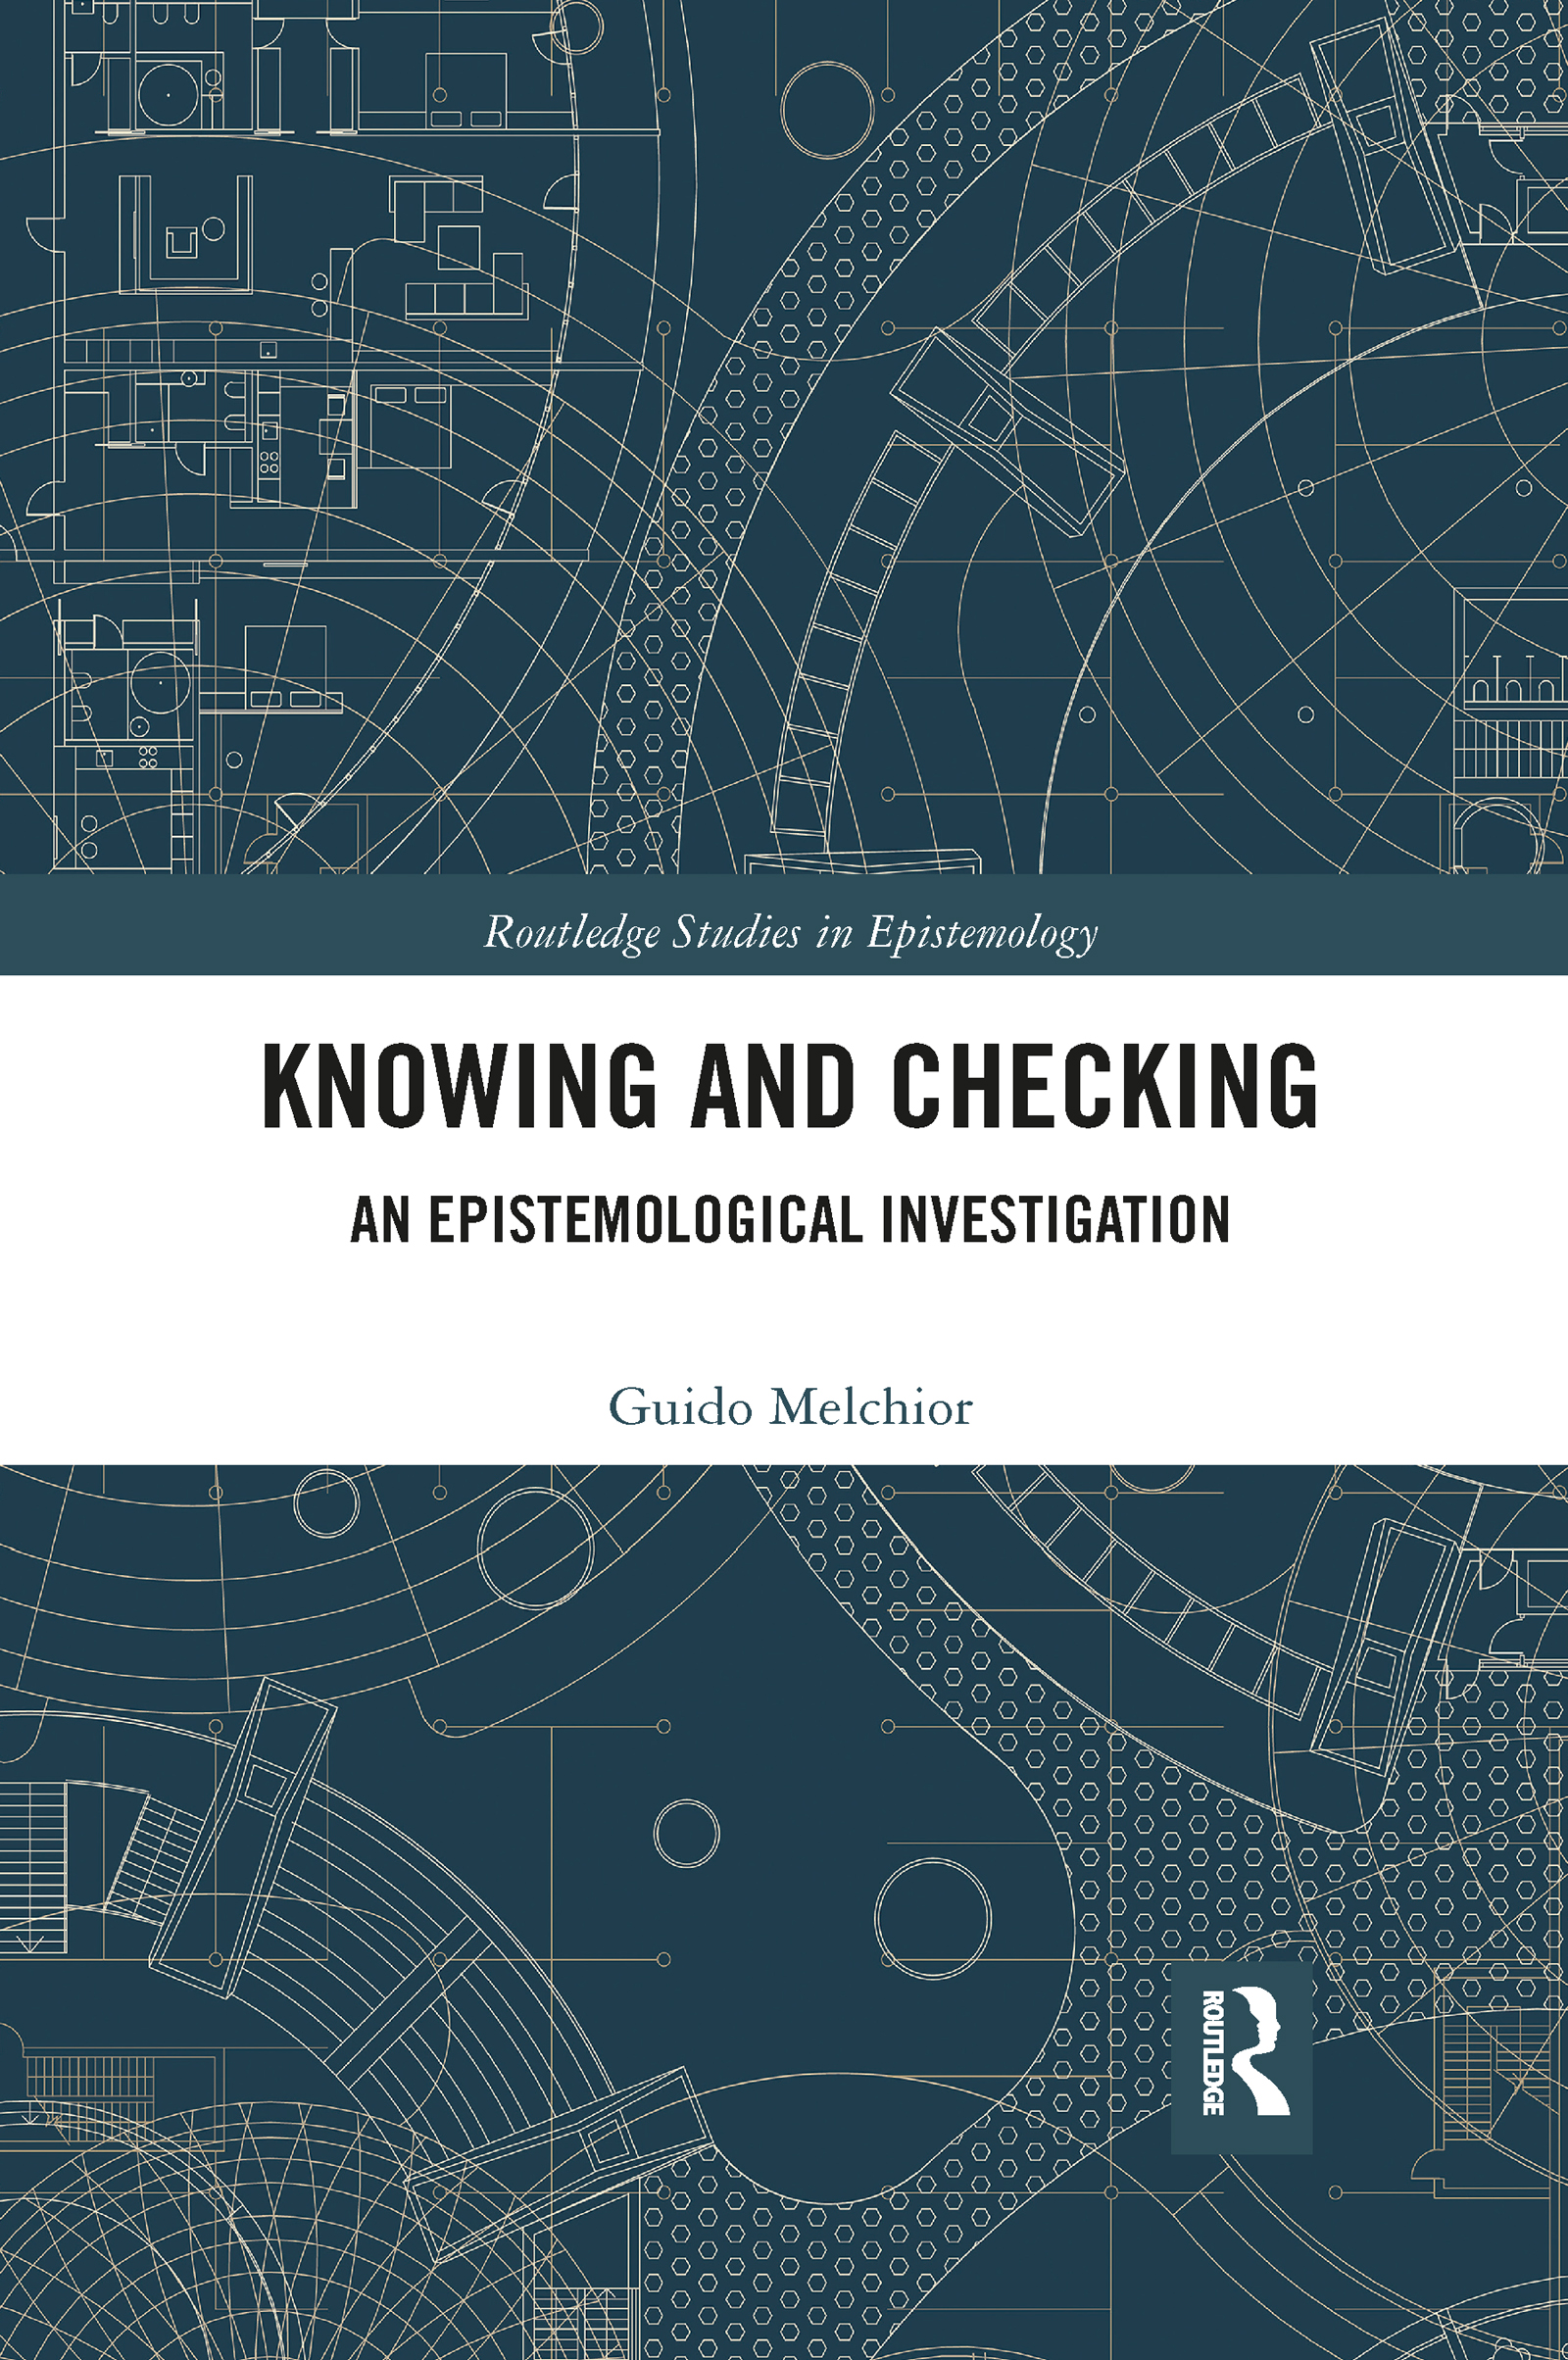 Knowing and Checking